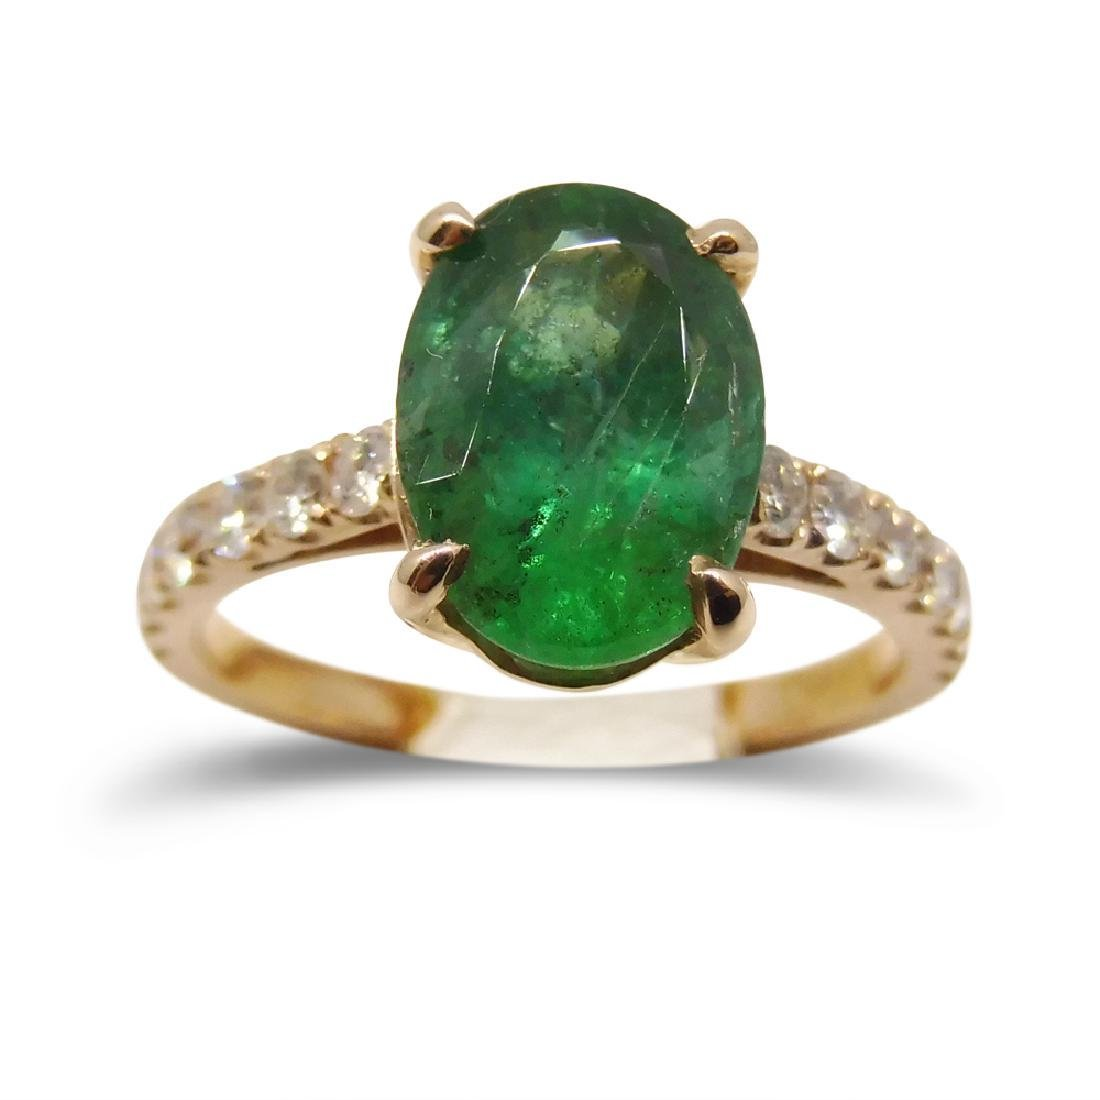 2.09ct. Emerald Ring in 14kt Pink/Rose Gold